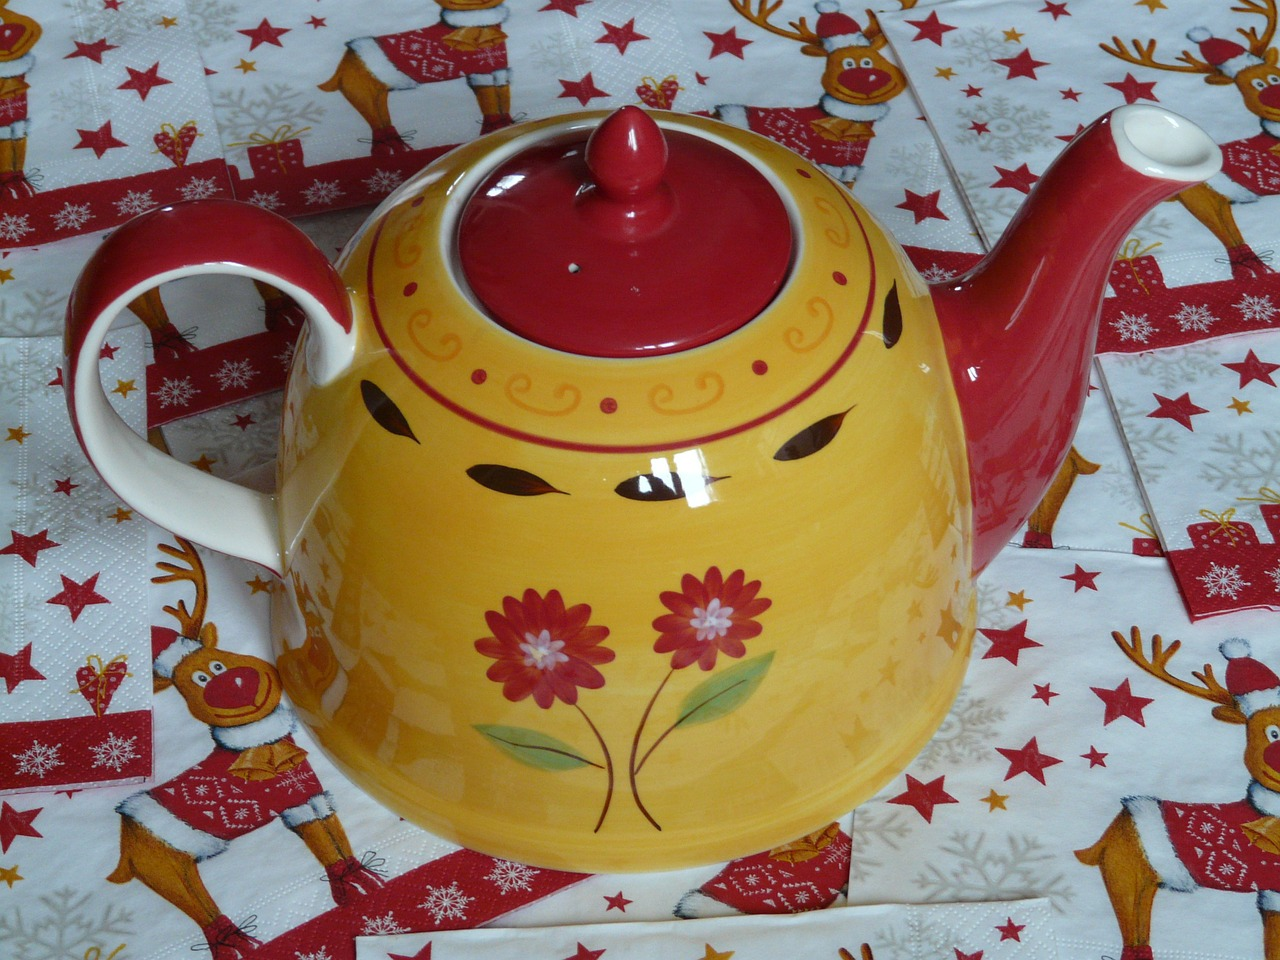 teapot,floral design,flowers,red lid,tee,porcelain,free pictures, free photos, free images, royalty free, free illustrations, public domain